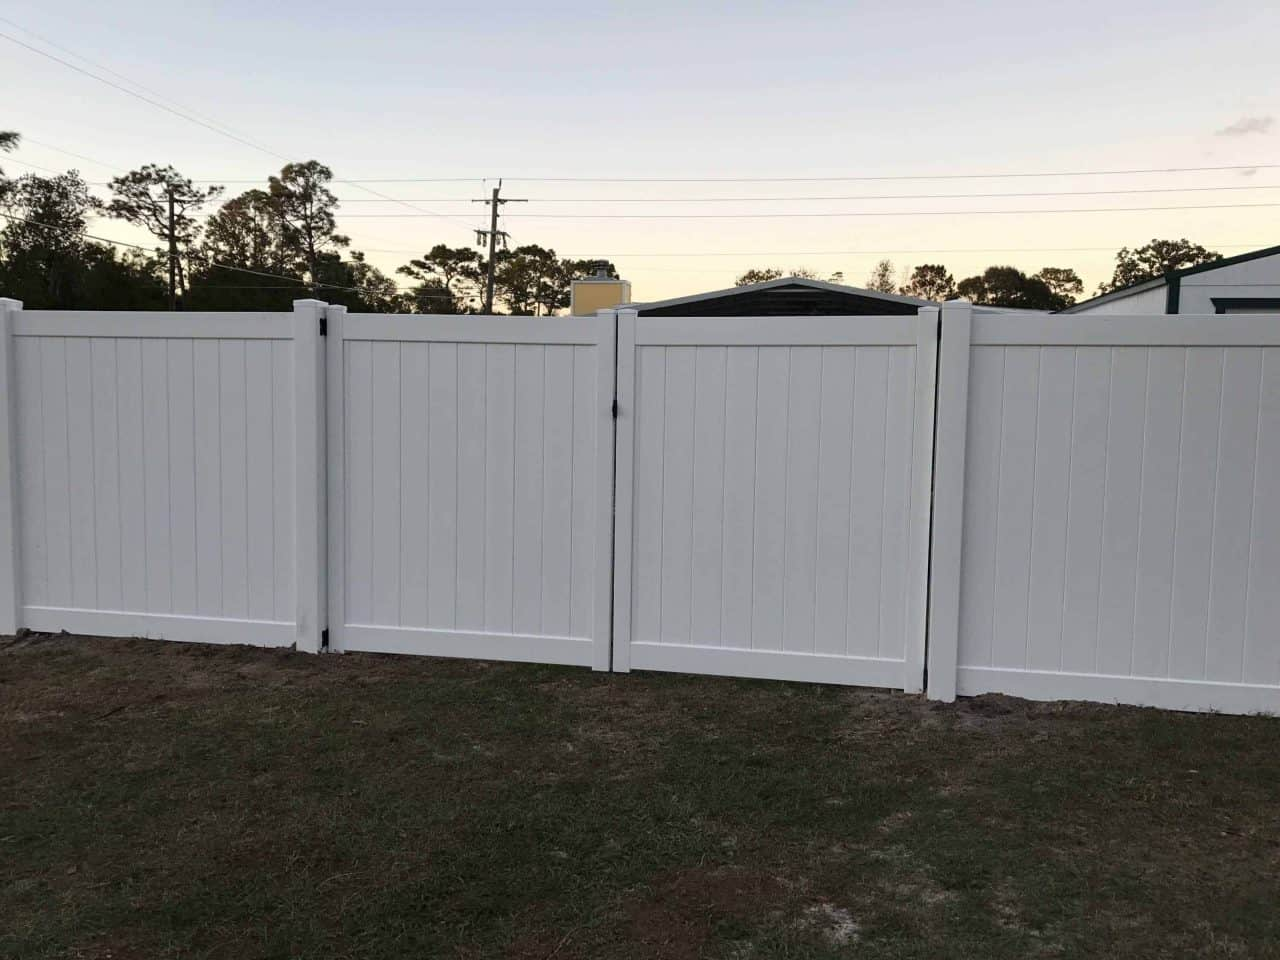 https://www.superiorfenceandrail.com/wp-content/uploads/2017/01/VINYL-GATES2-1280x960.jpeg